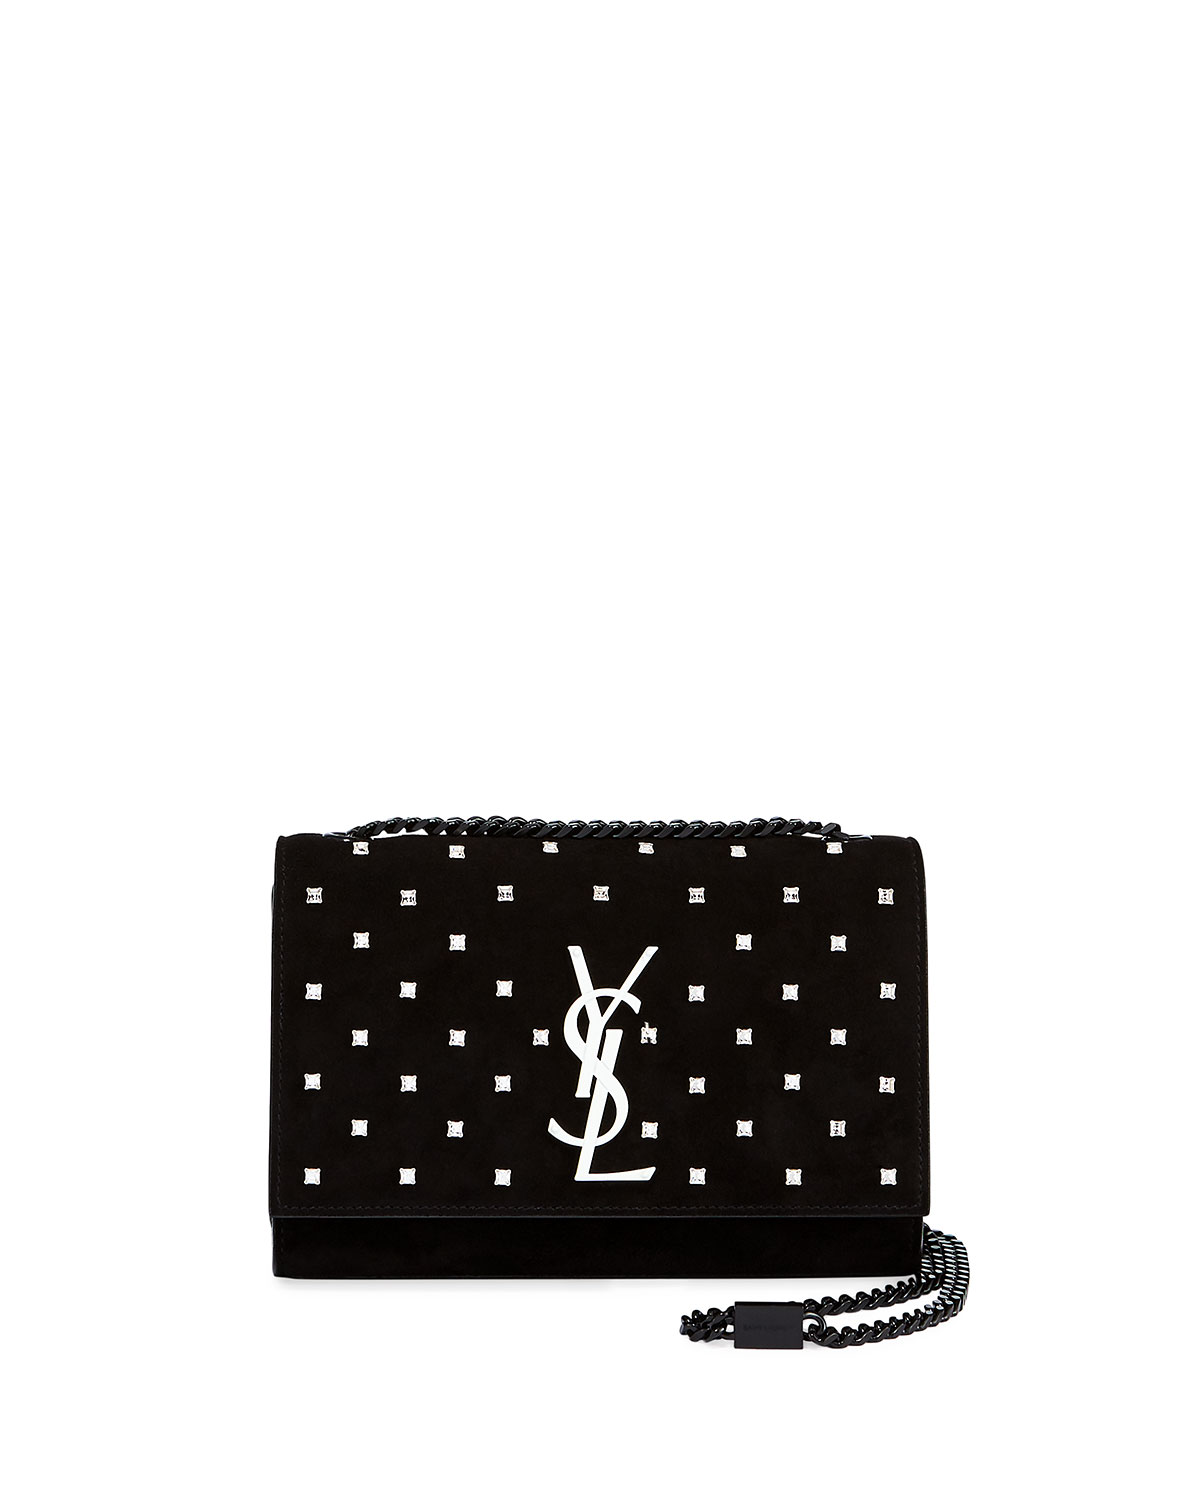 Kate Small Monogram Ysl Leather Crossbody Bag With Crystals by Saint Laurent